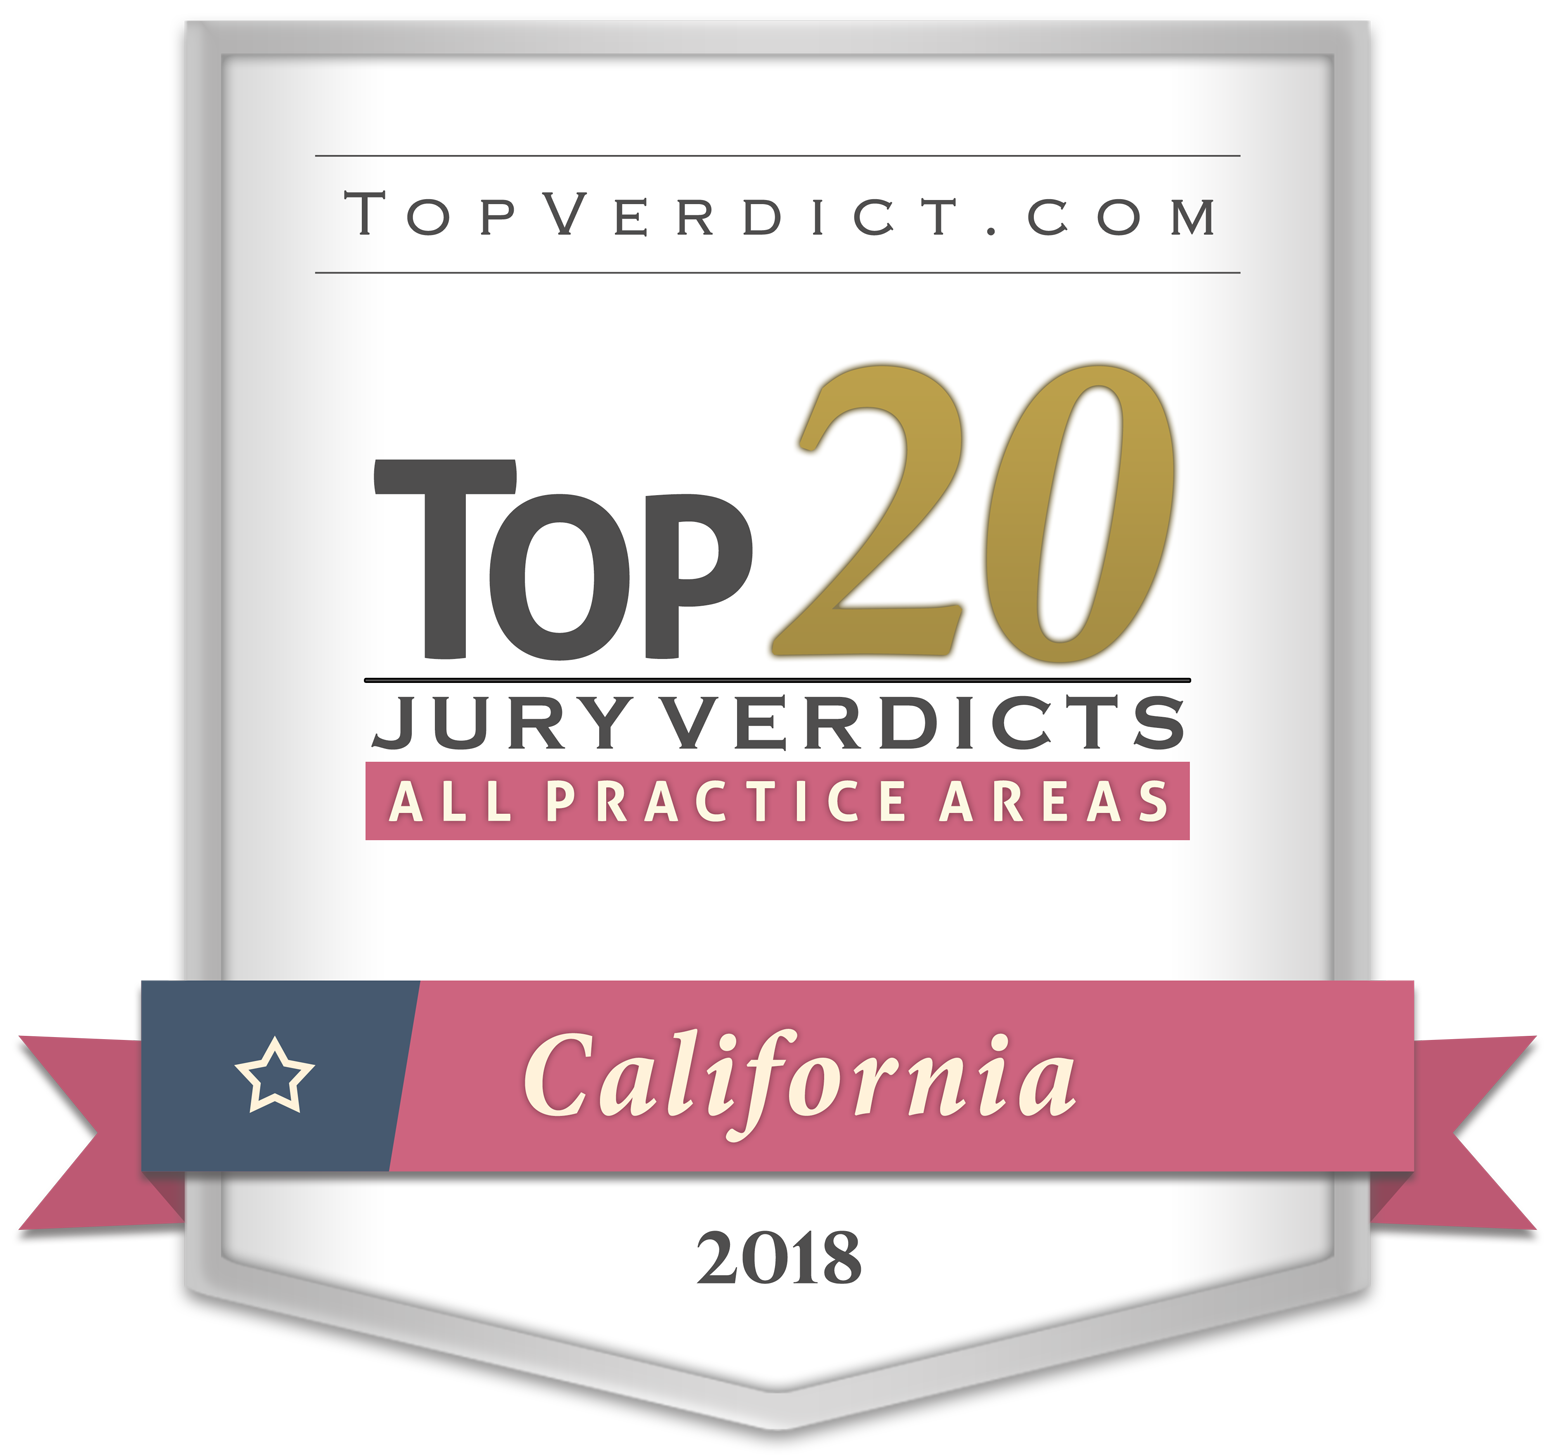 https://topverdict.com/lists/2018/california/20